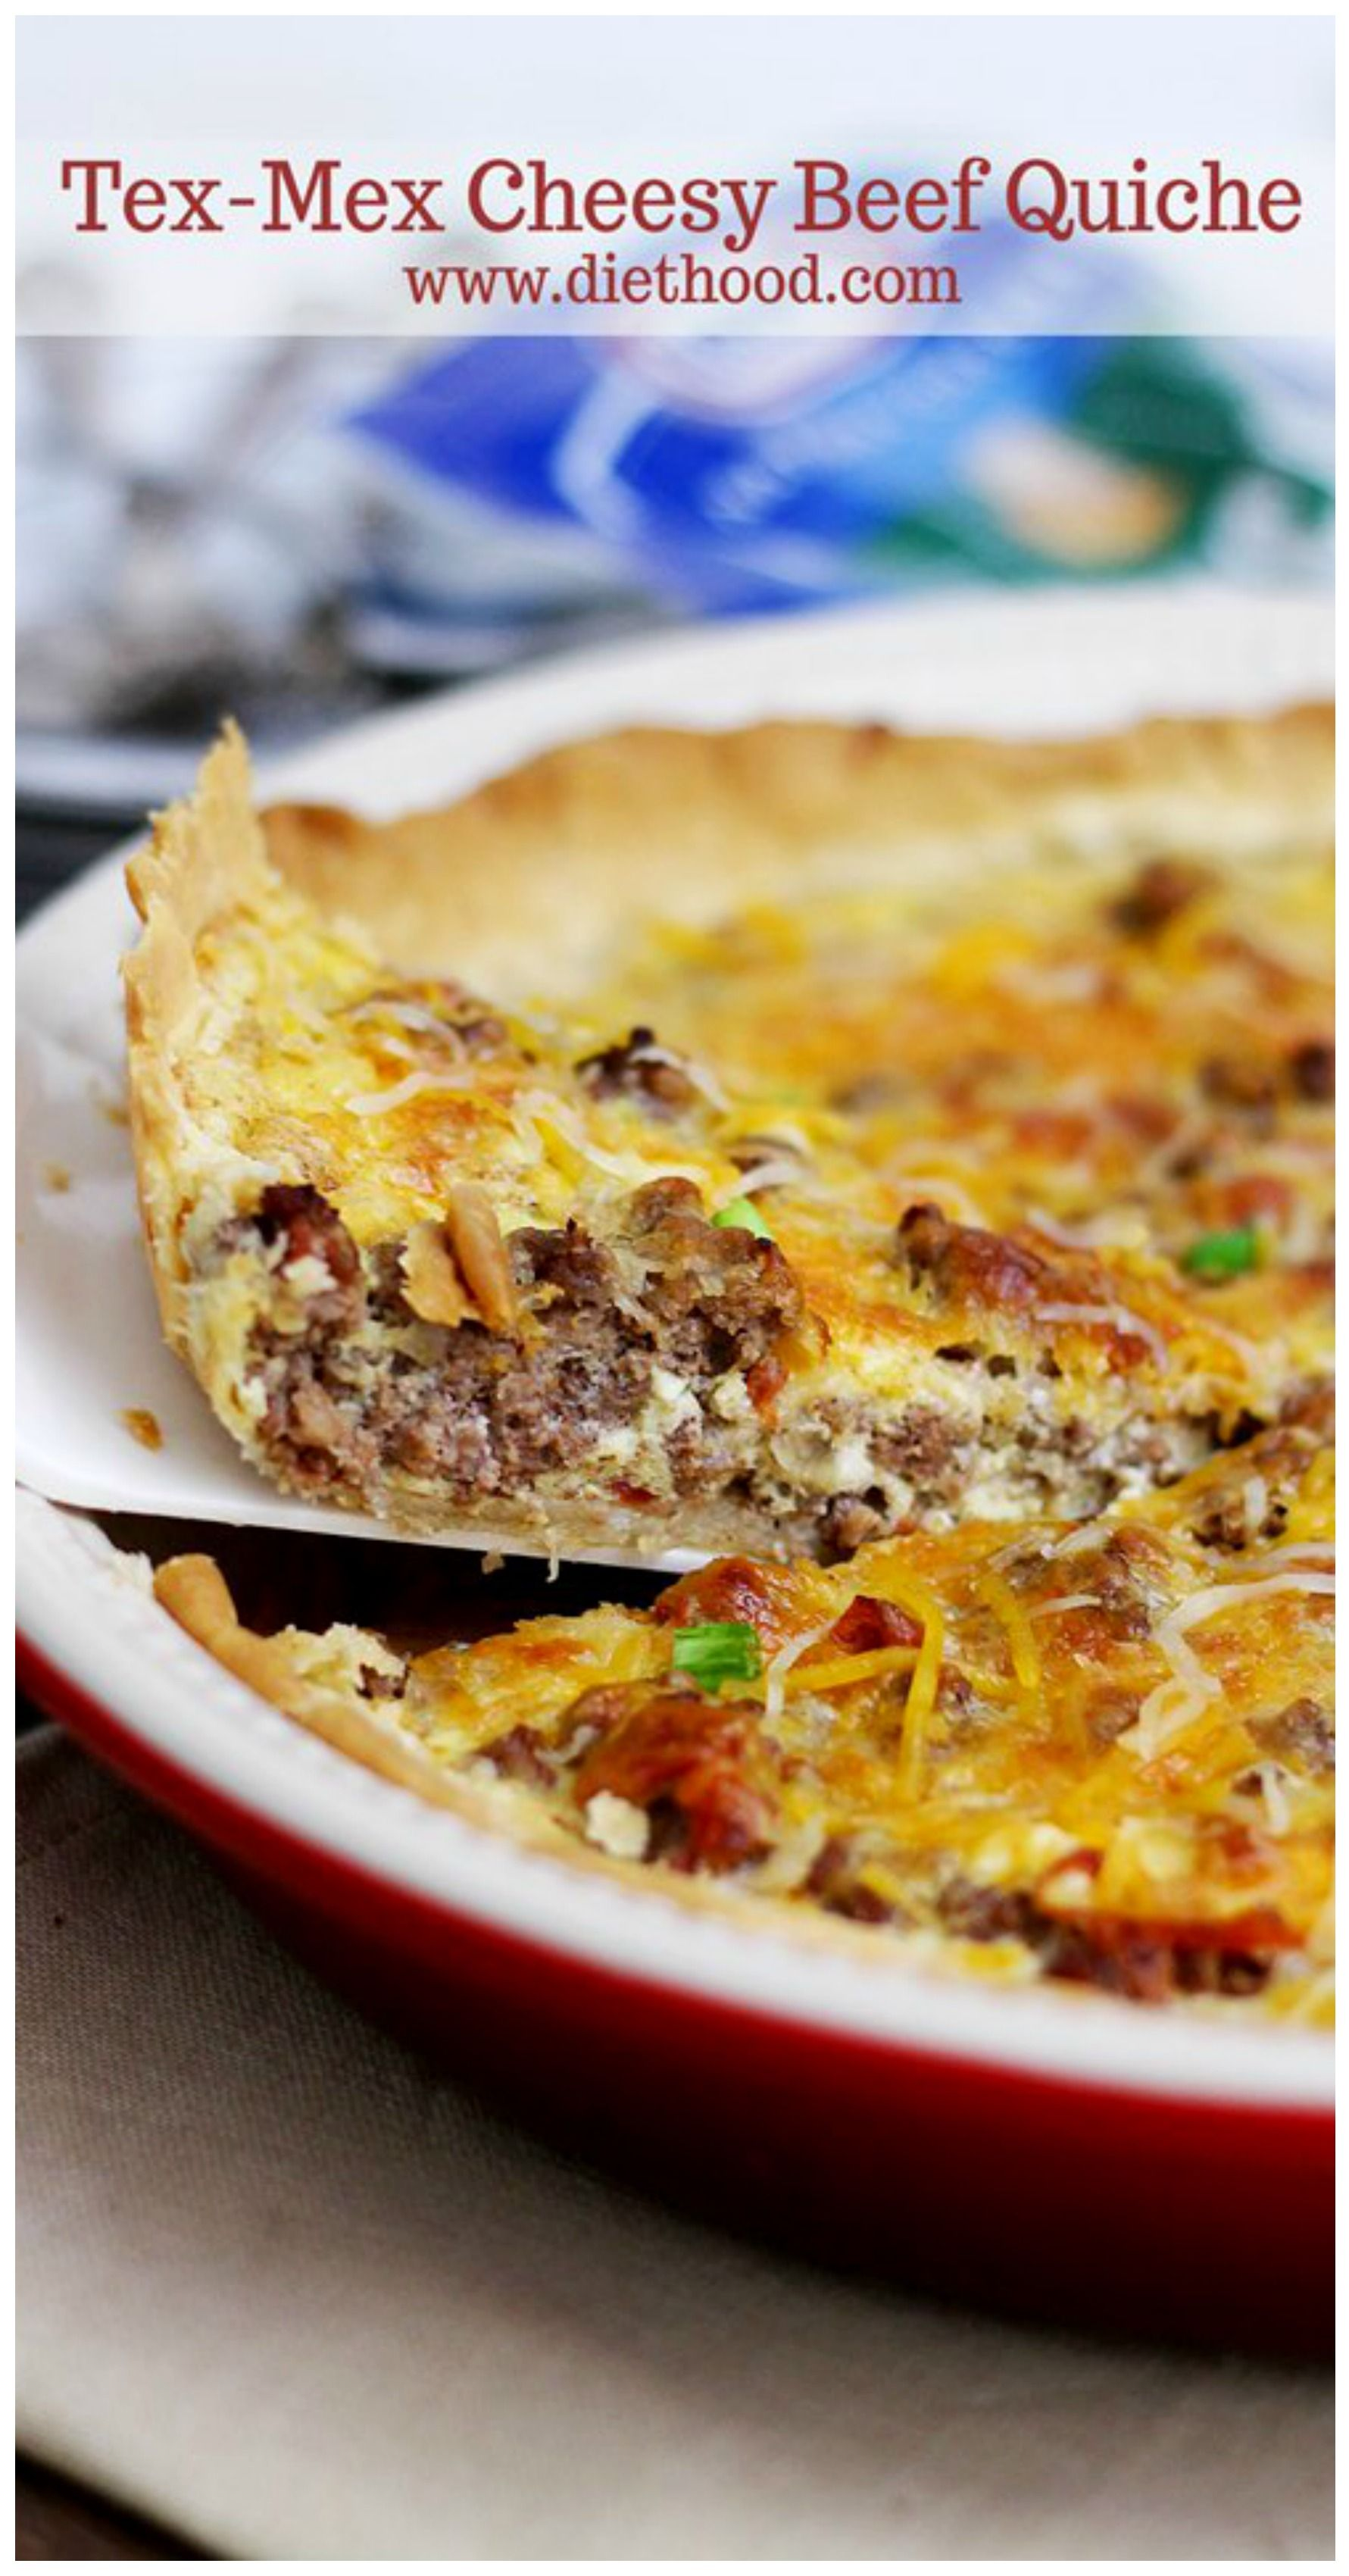 Southwest This Tex Mex Cheesy Beef Quiche Is A Great Weeknight Meal Filled With The Delicious Flavors Of The Southwest An Quiche Recipes Beef Quiche Recipes